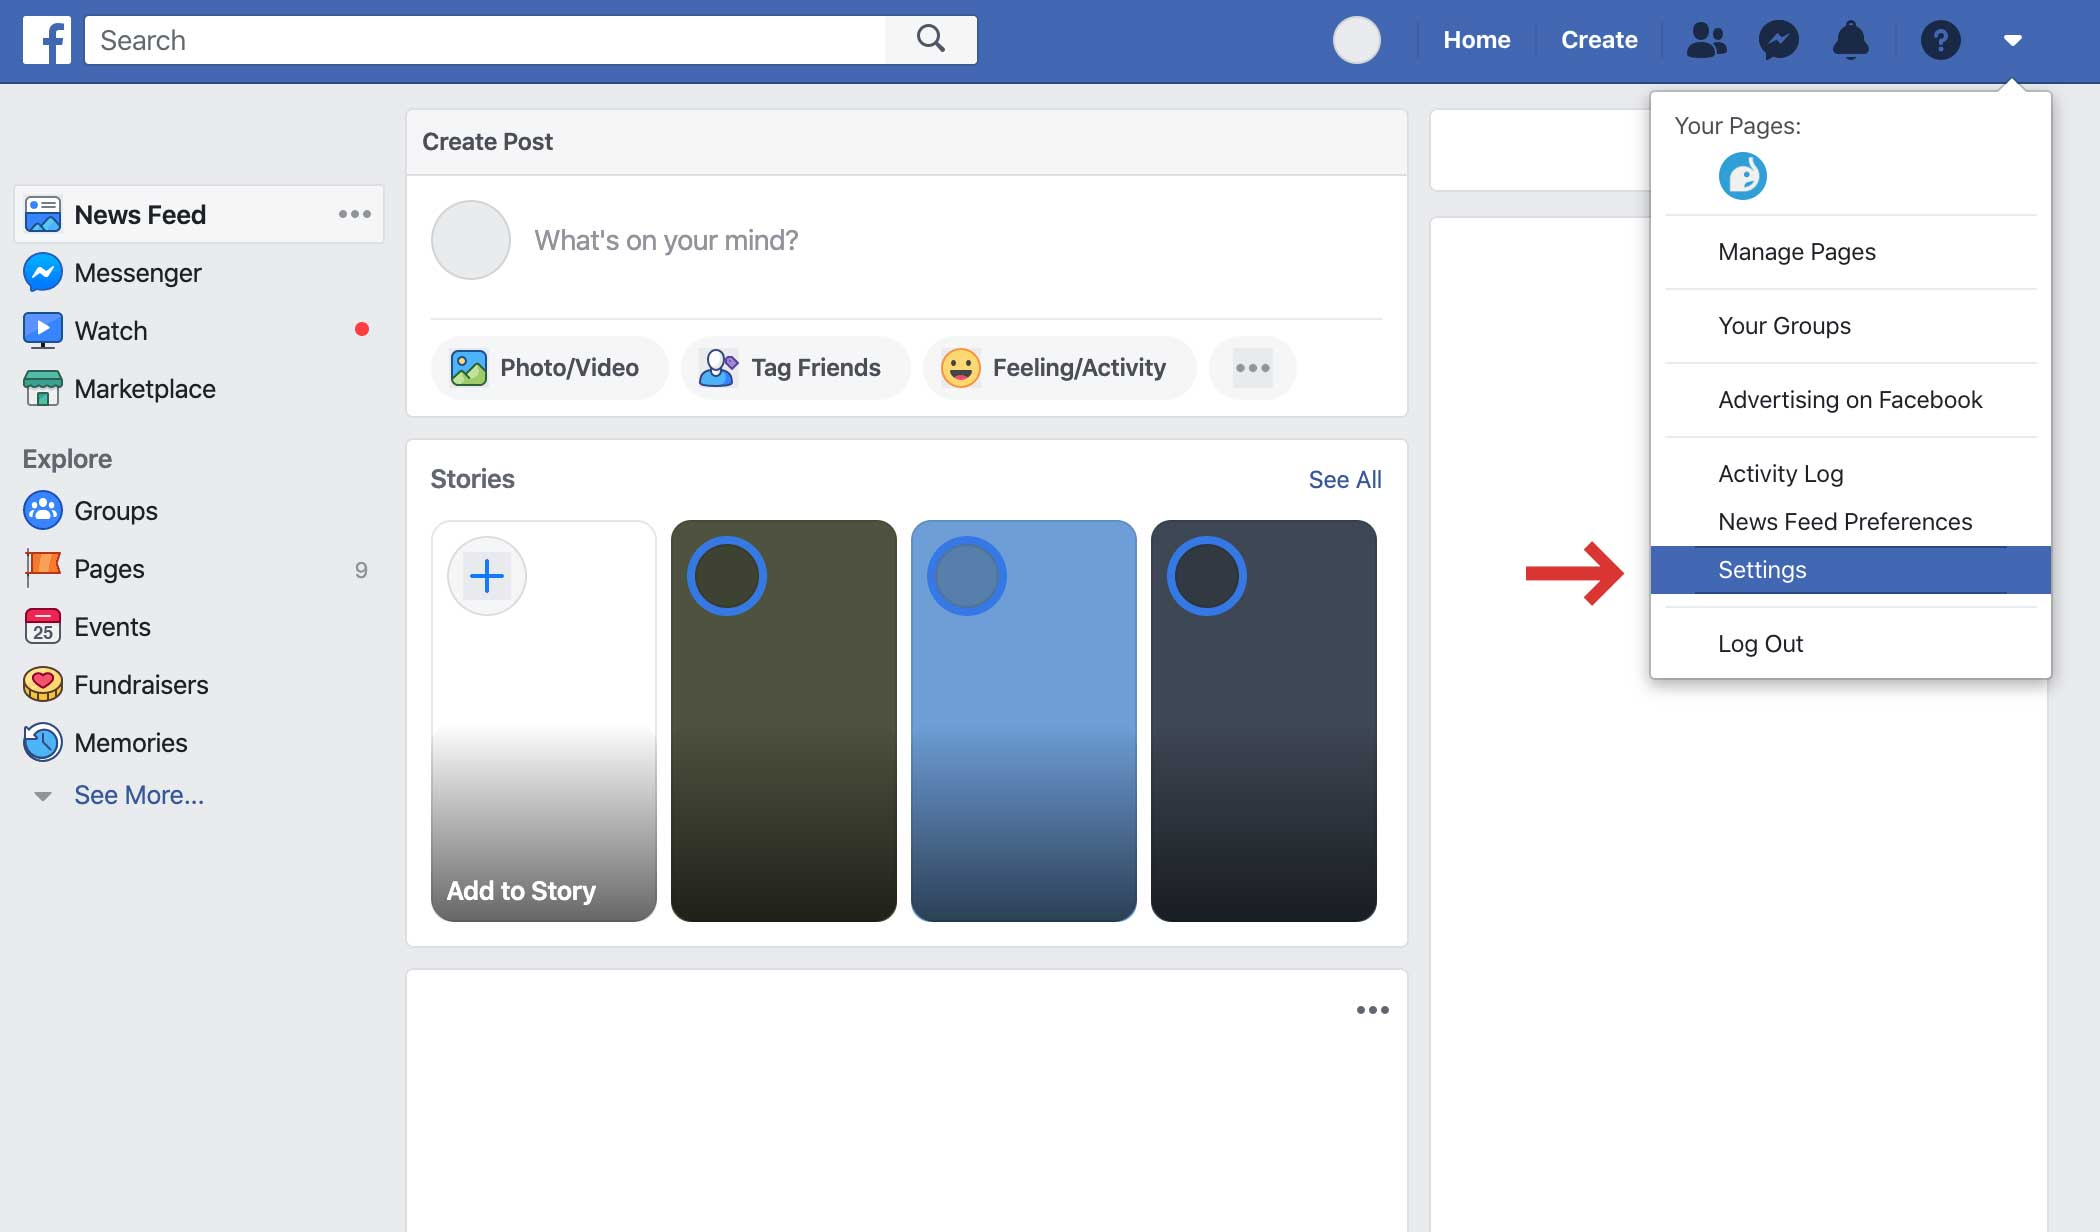 Facebook Settings is in the menu on the top right corner